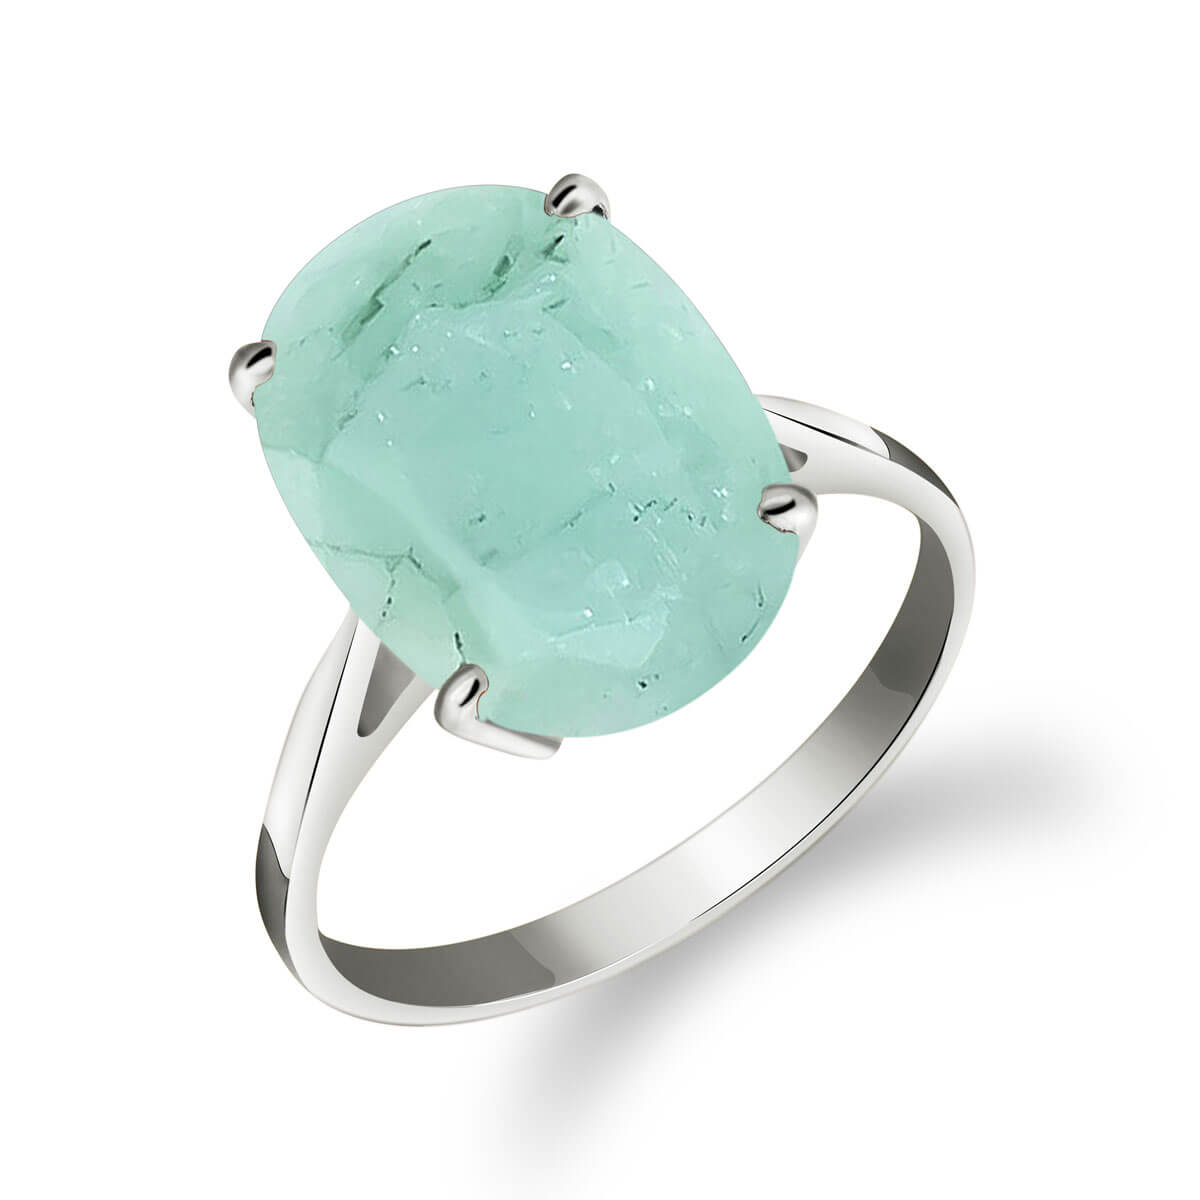 Emerald Valiant Ring 6.5 ct in 18ct White Gold